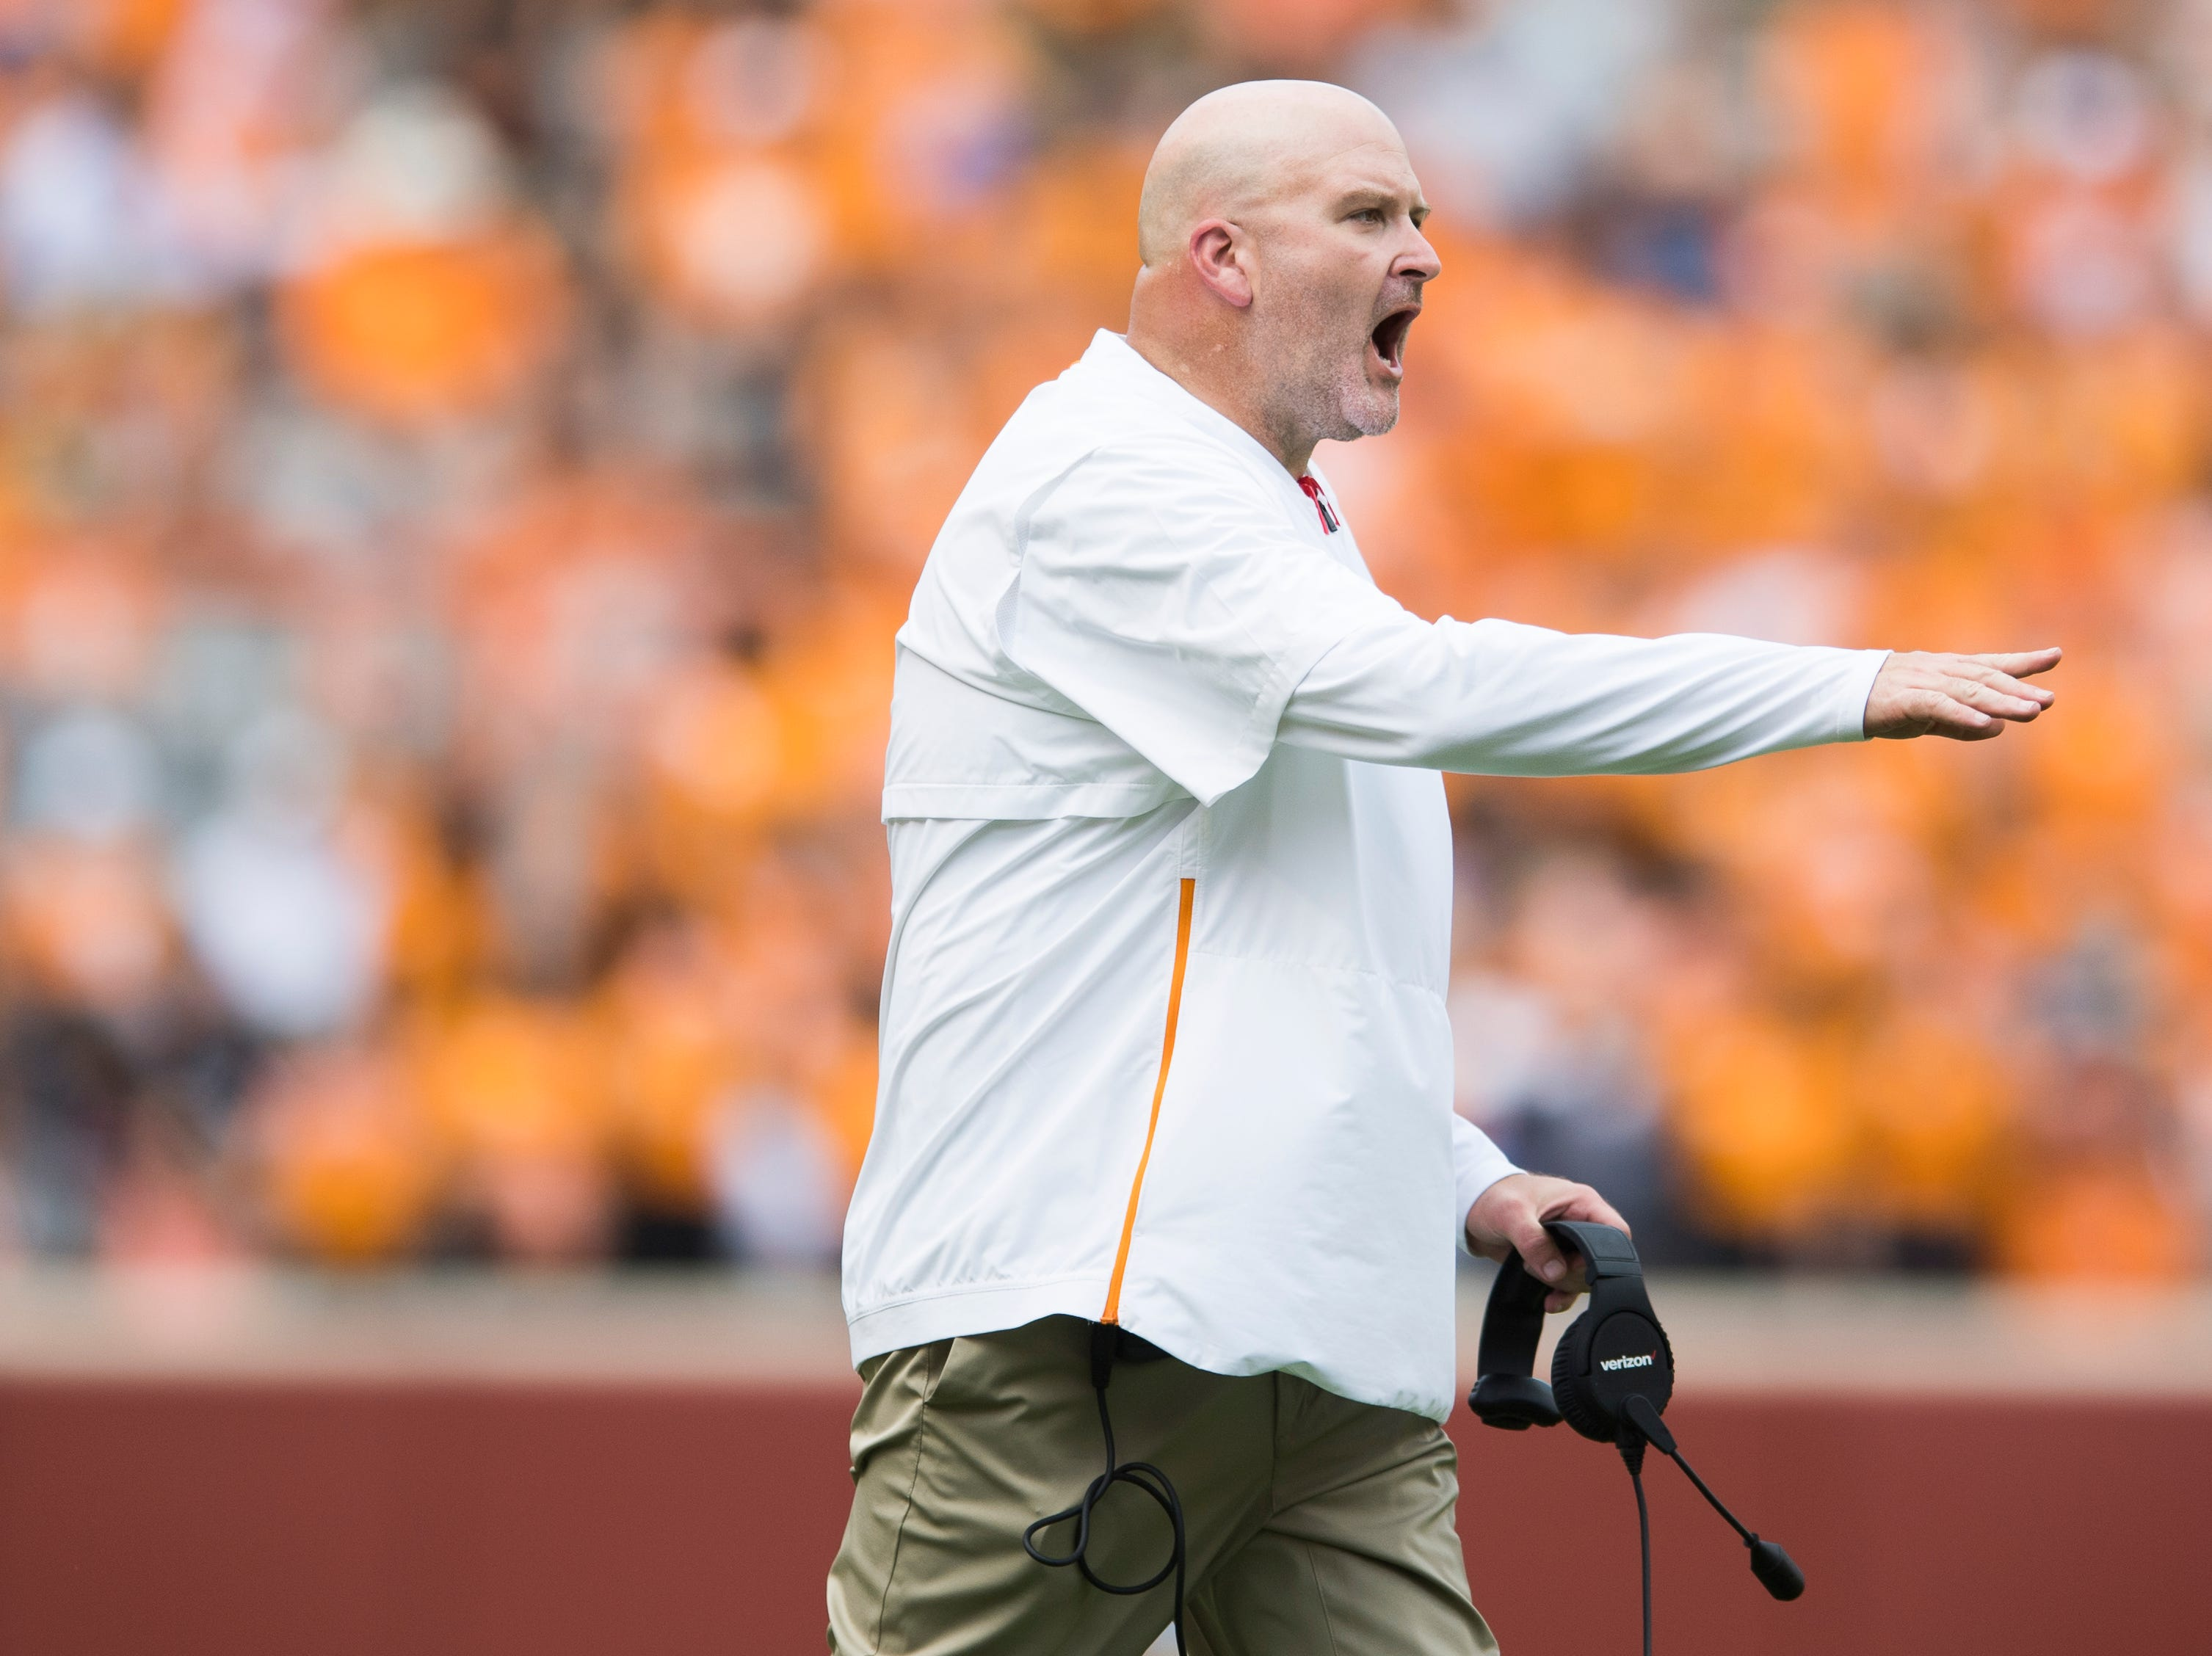 Tennessee offensive line coach Will Friend calls during a game between Tennessee and UTEP at Neyland Stadium in Knoxville, Tennessee on Saturday, September 15, 2018.